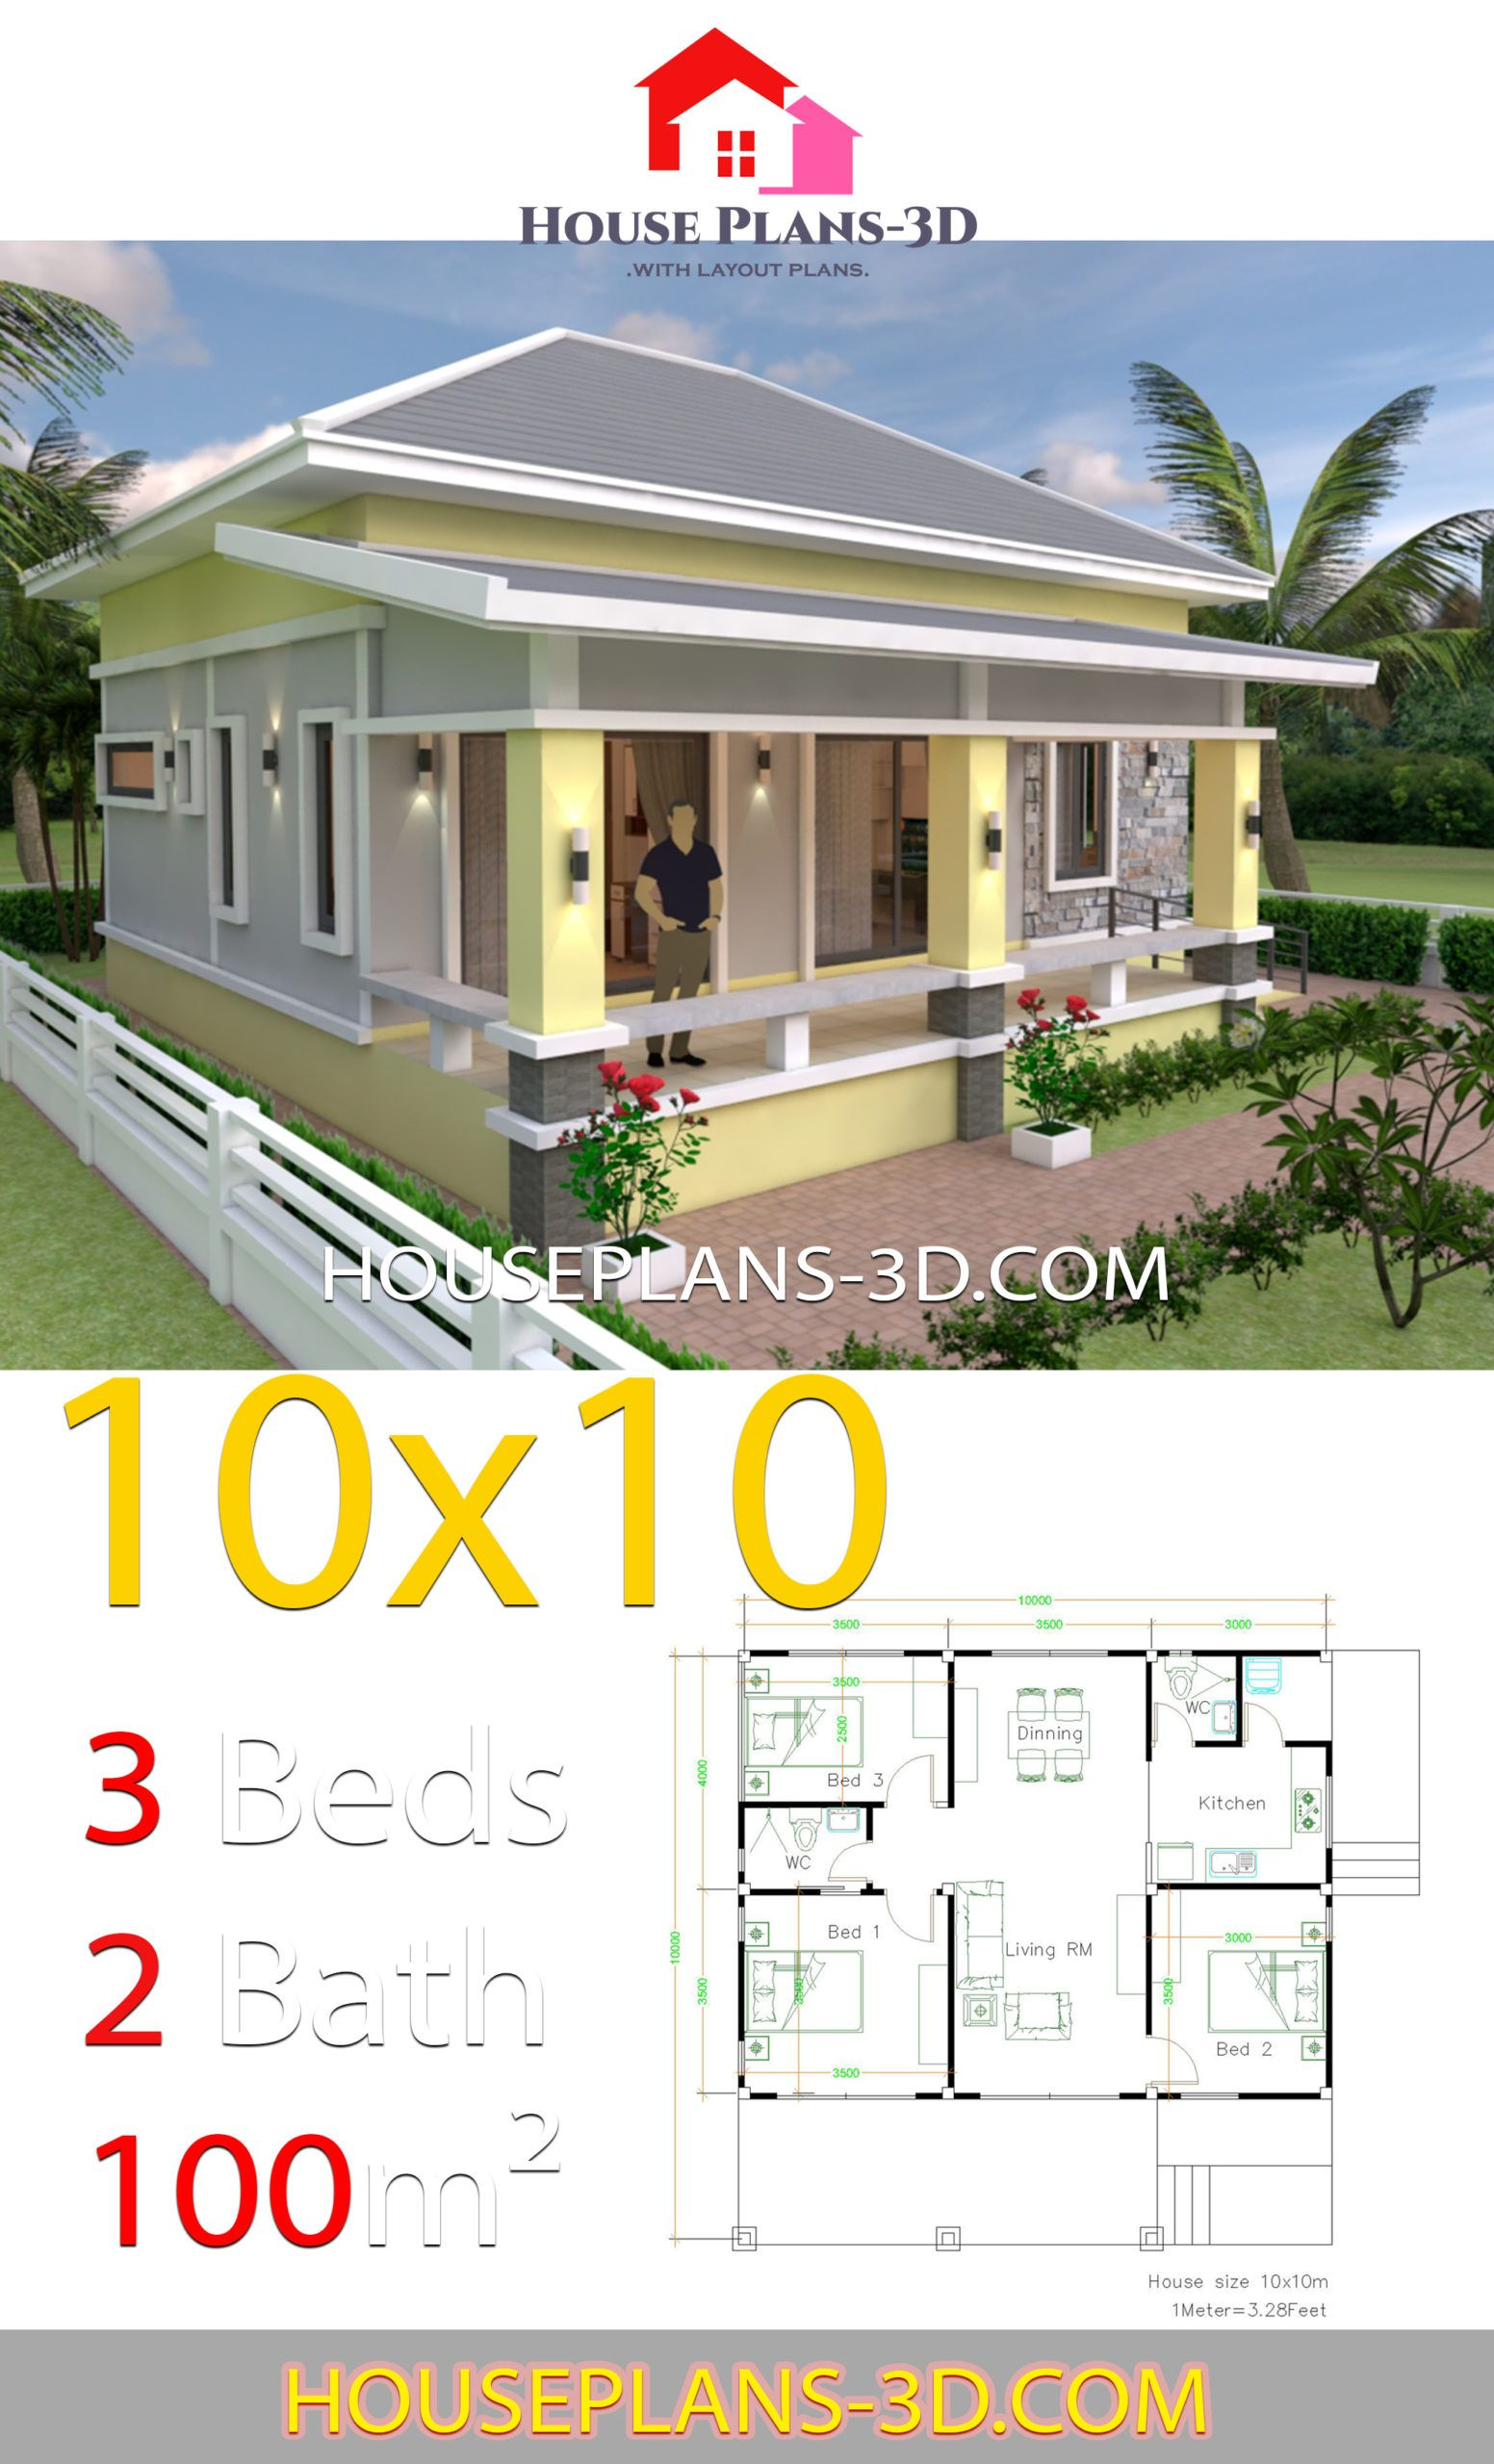 House Design 10x10 With 3 Bedrooms Hip Roof House Plans 3d